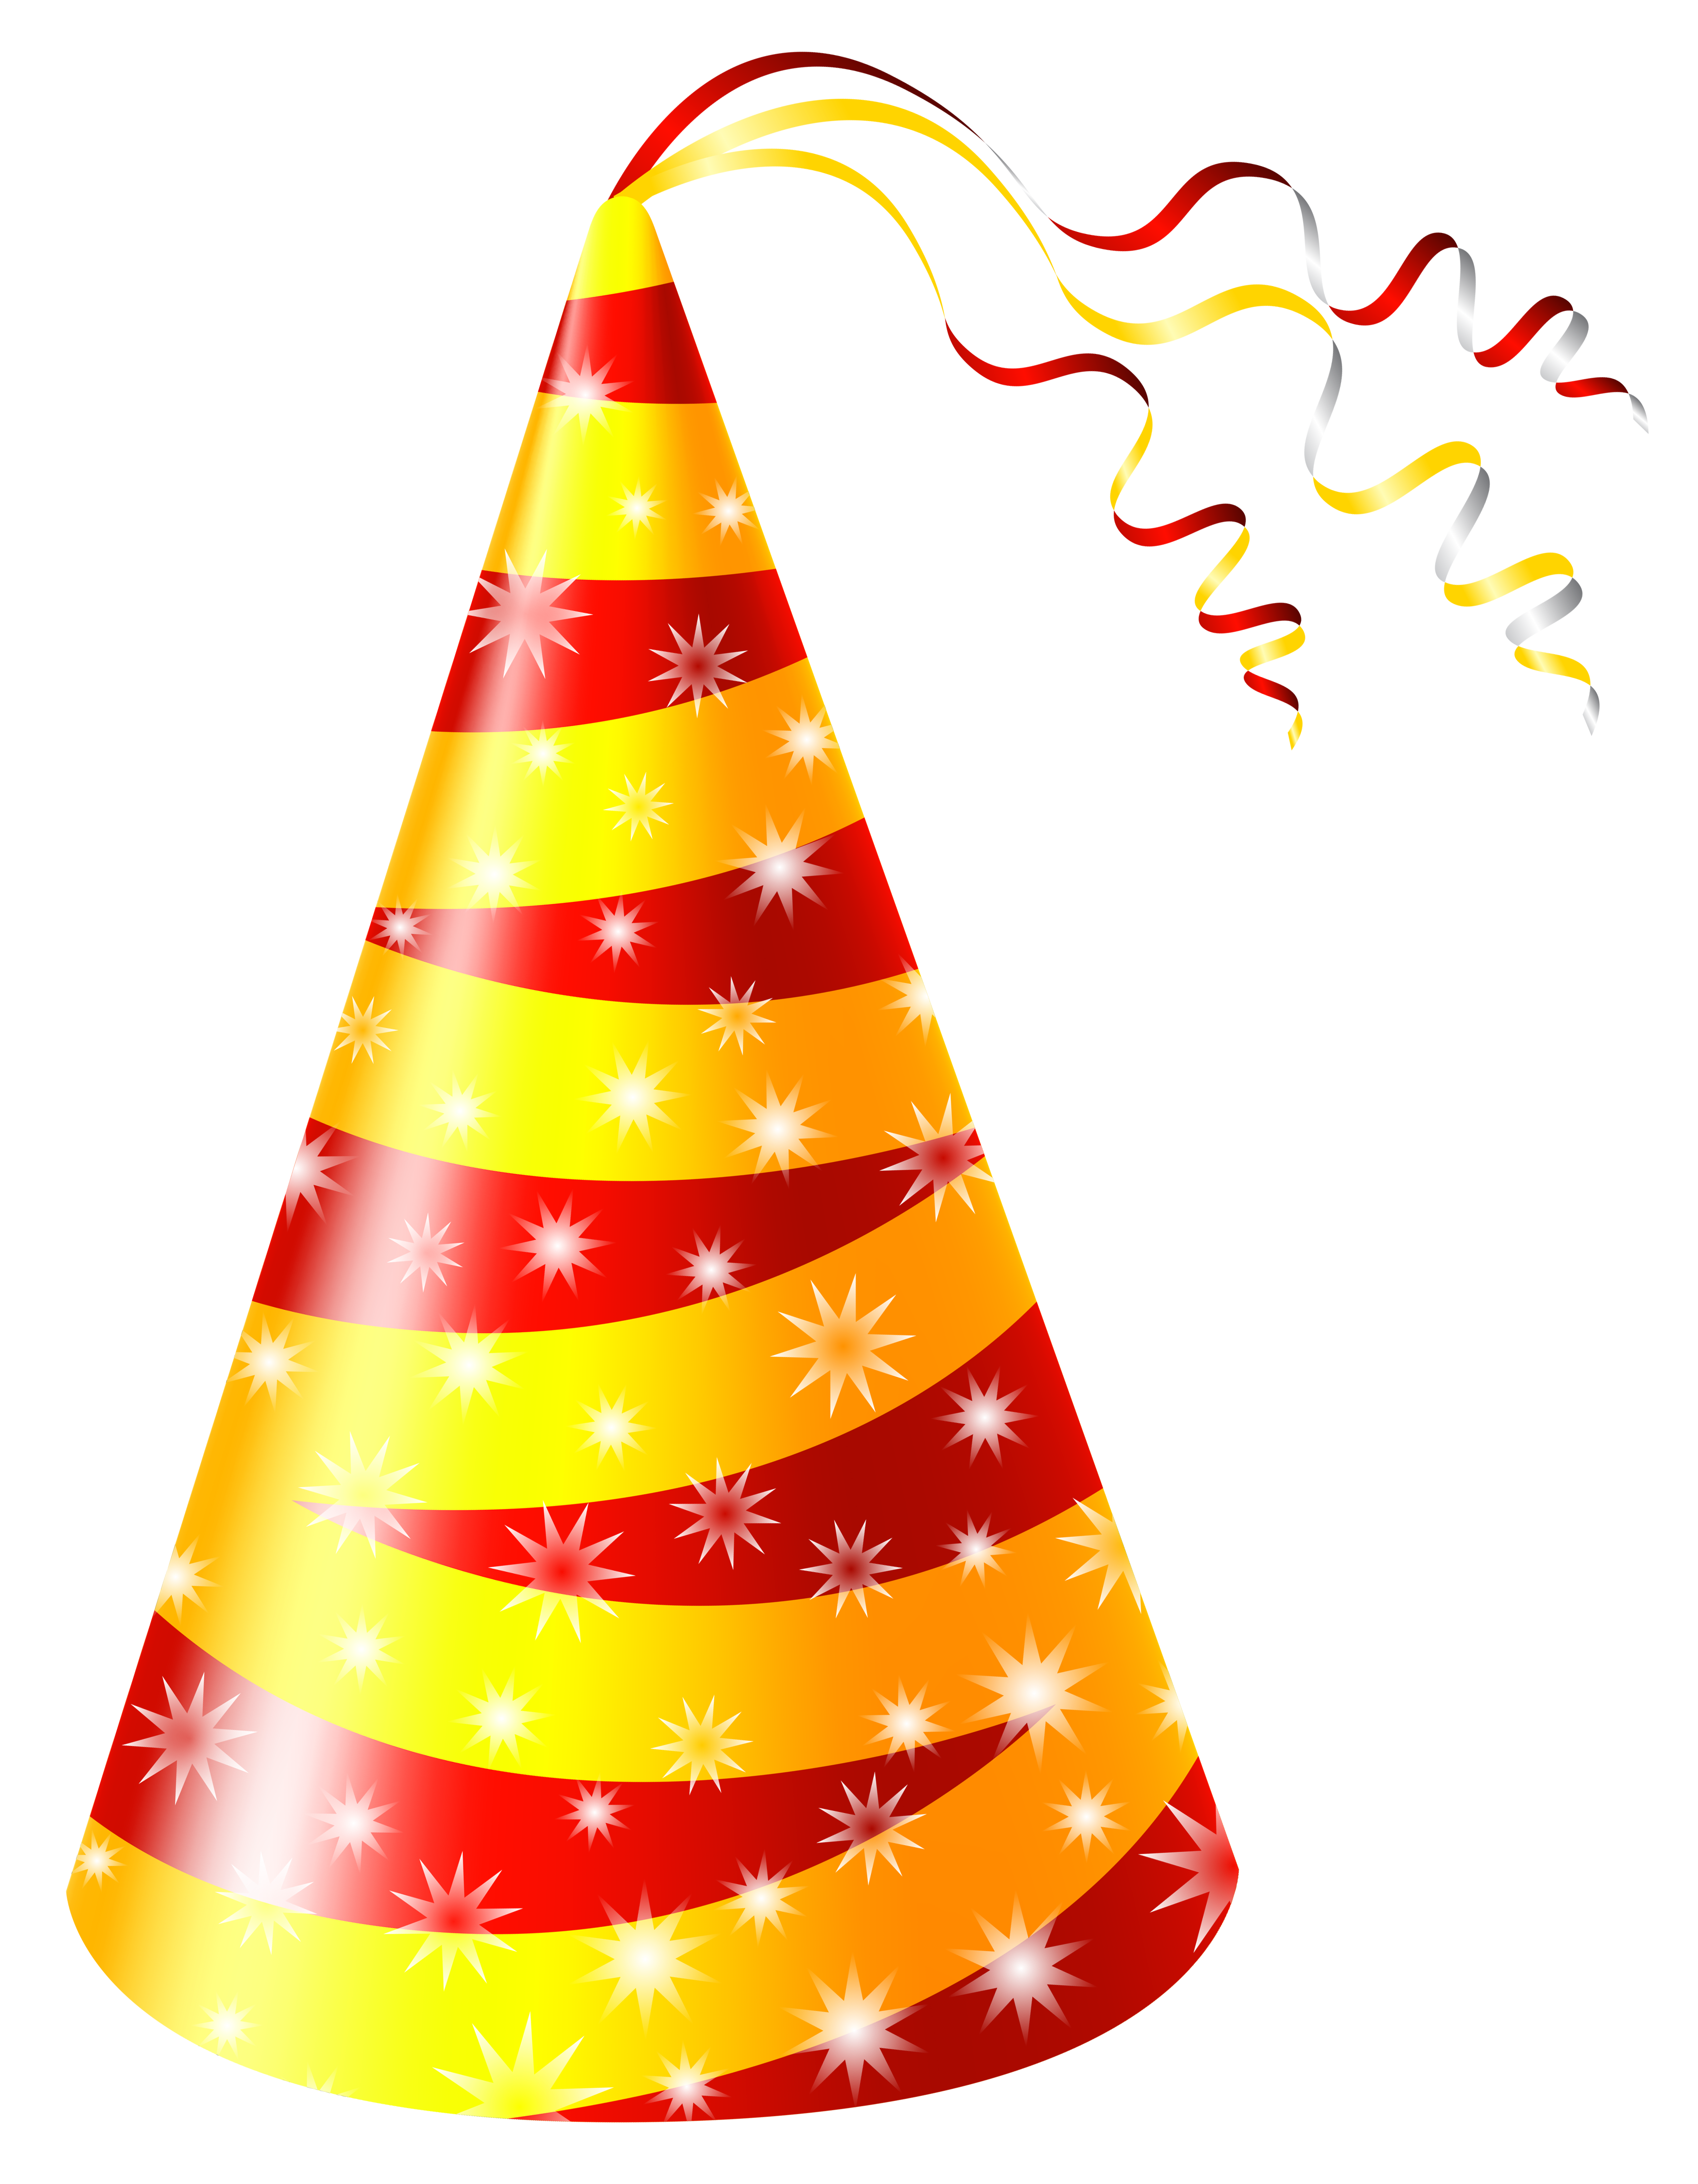 Yellow party hat clipart clipart freeuse download Birthday hat yellow and red party hat clipart image ... clipart freeuse download